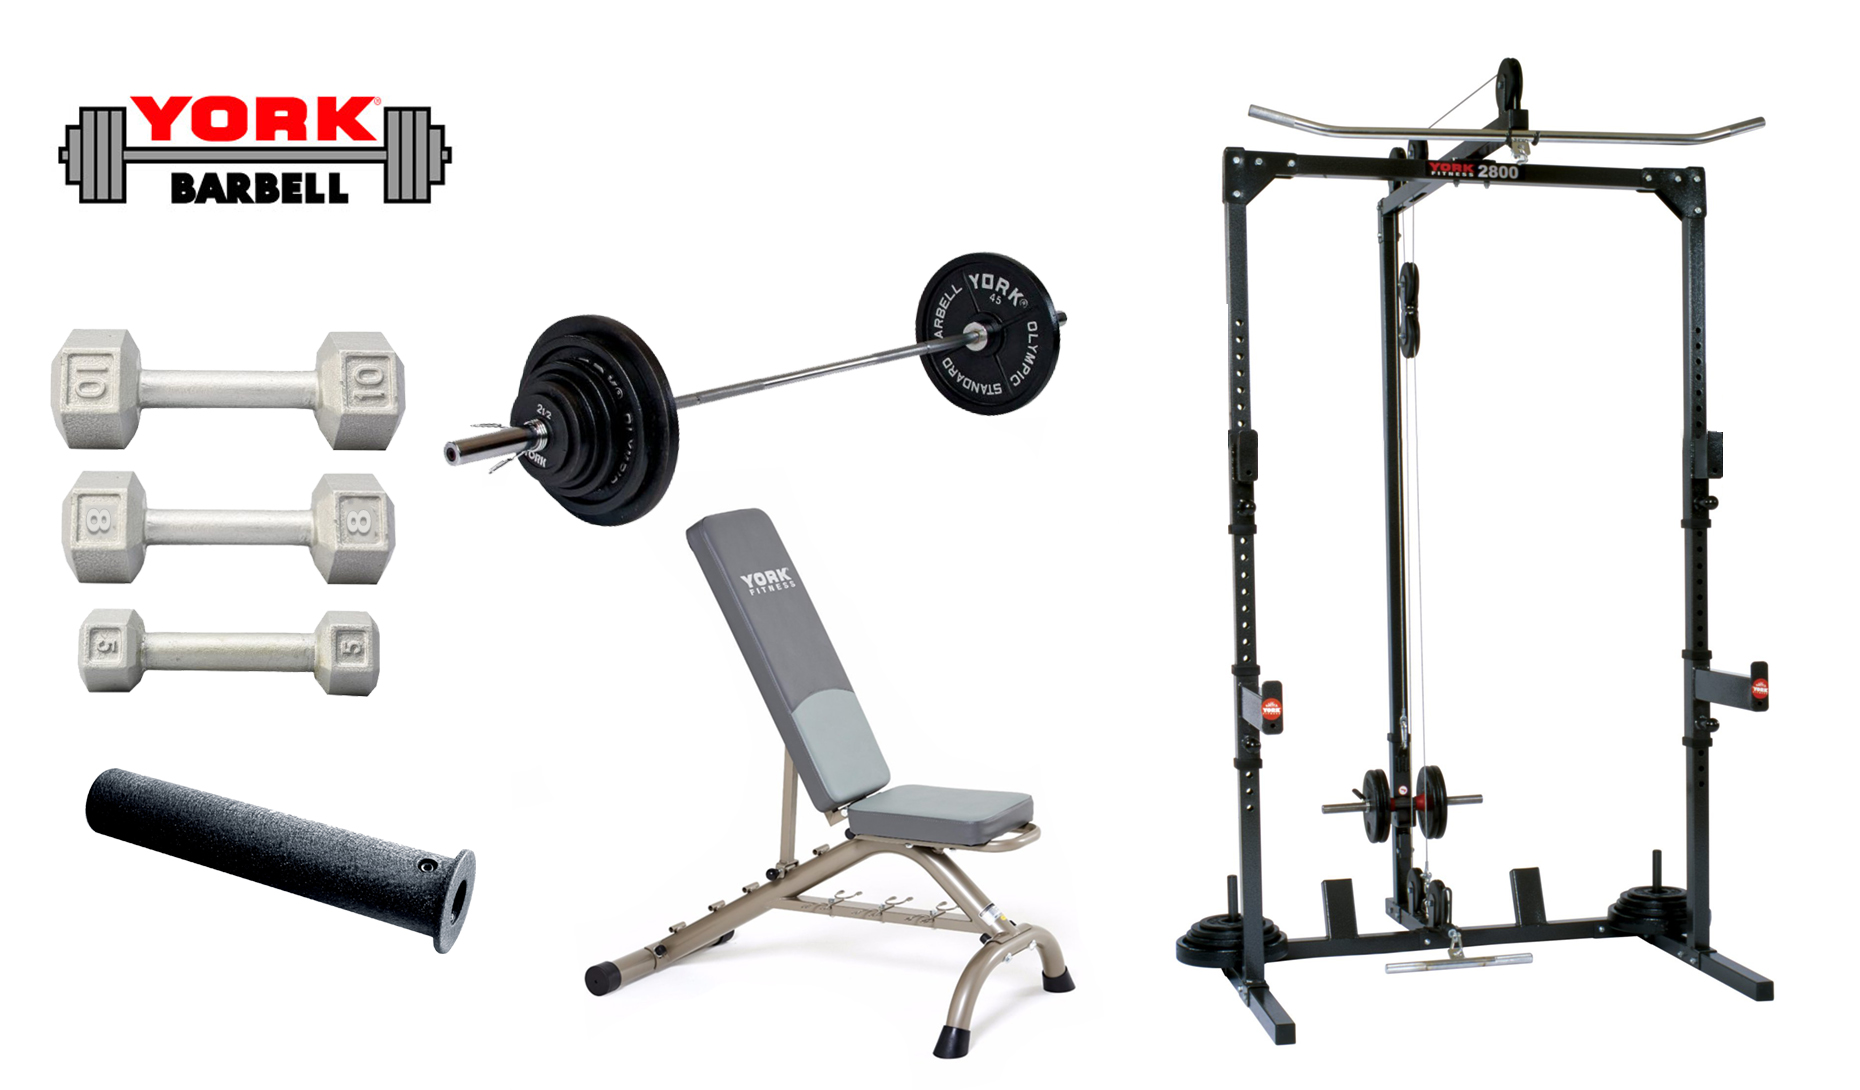 Basic Training Cage With Free Weight System York Barbell